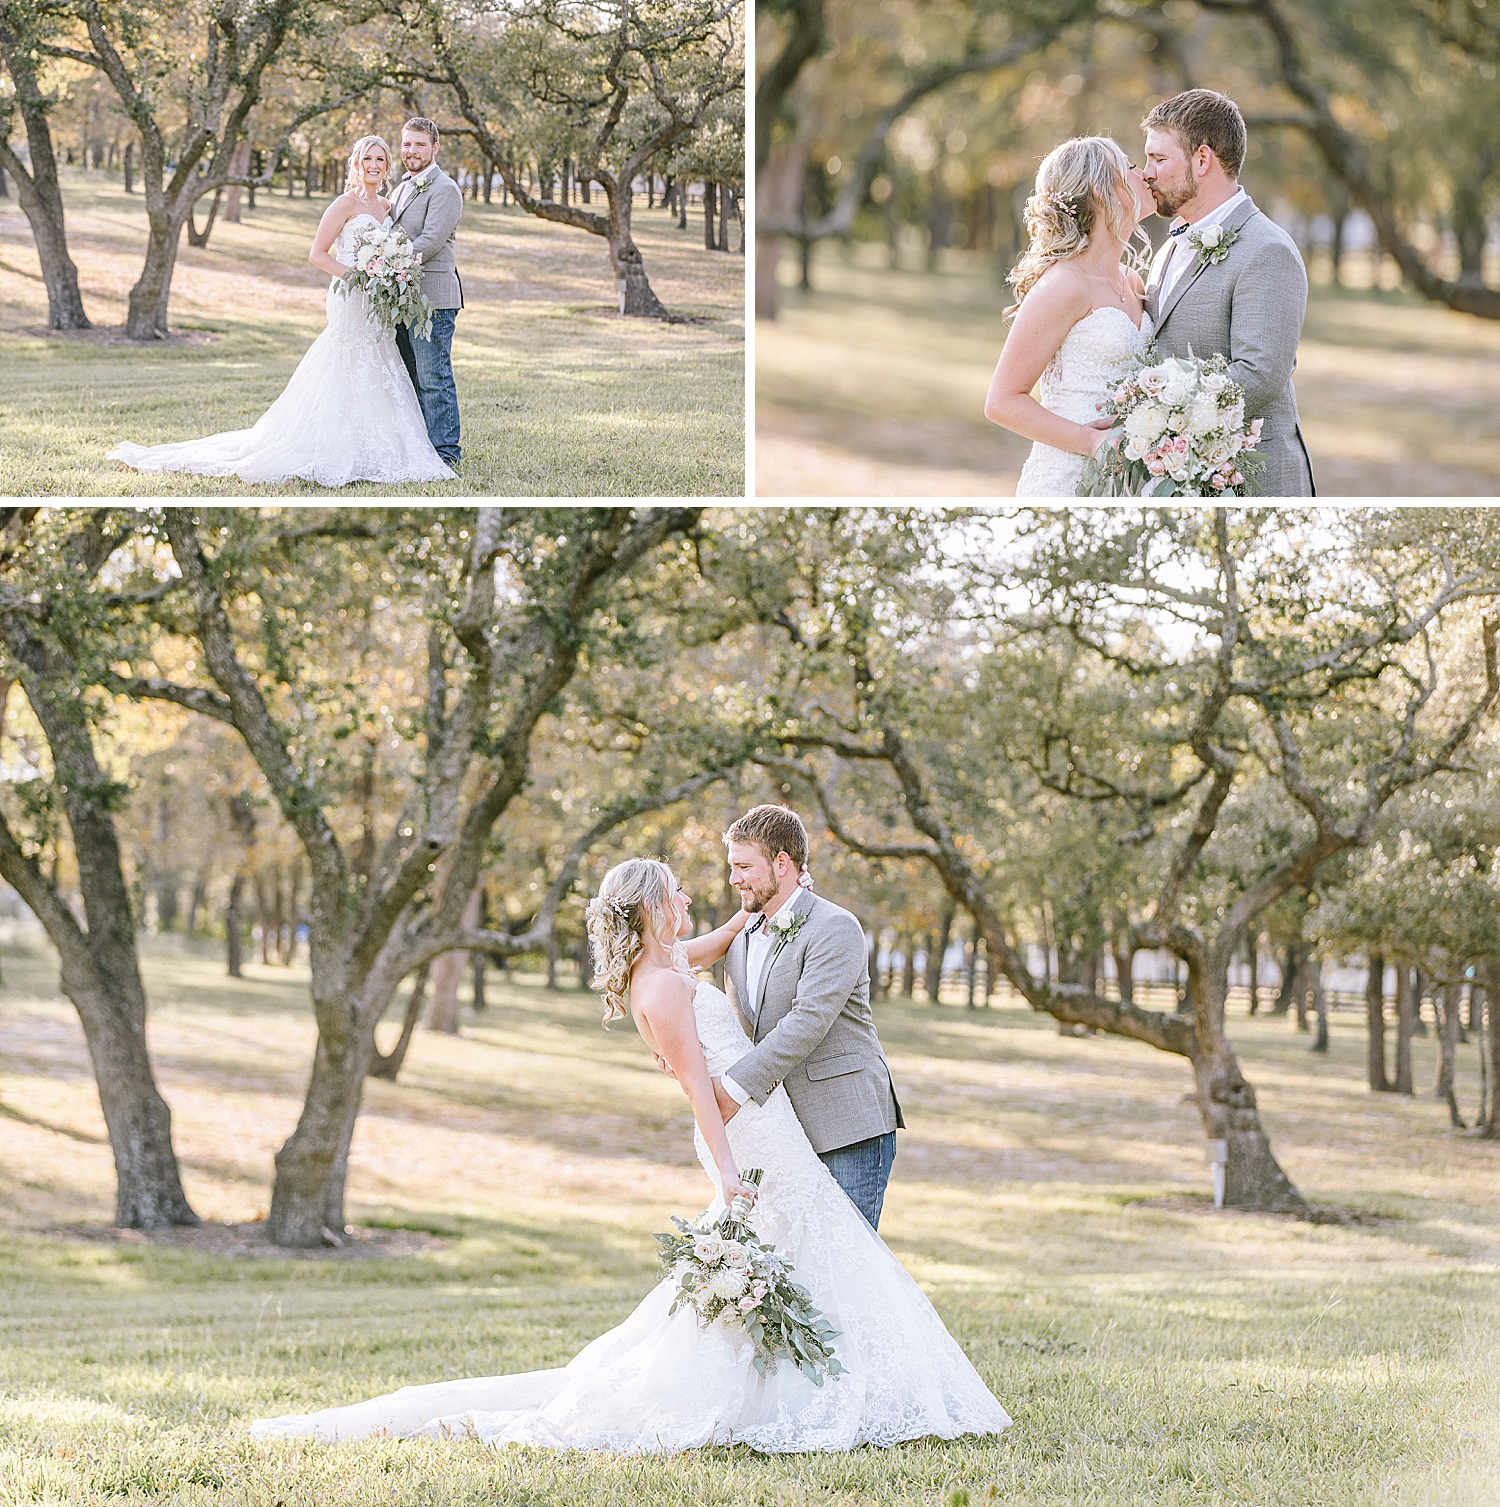 Rackler-Ranch-LaVernia-Texas-Wedding-Carly-Barton-Photography_0104.jpg